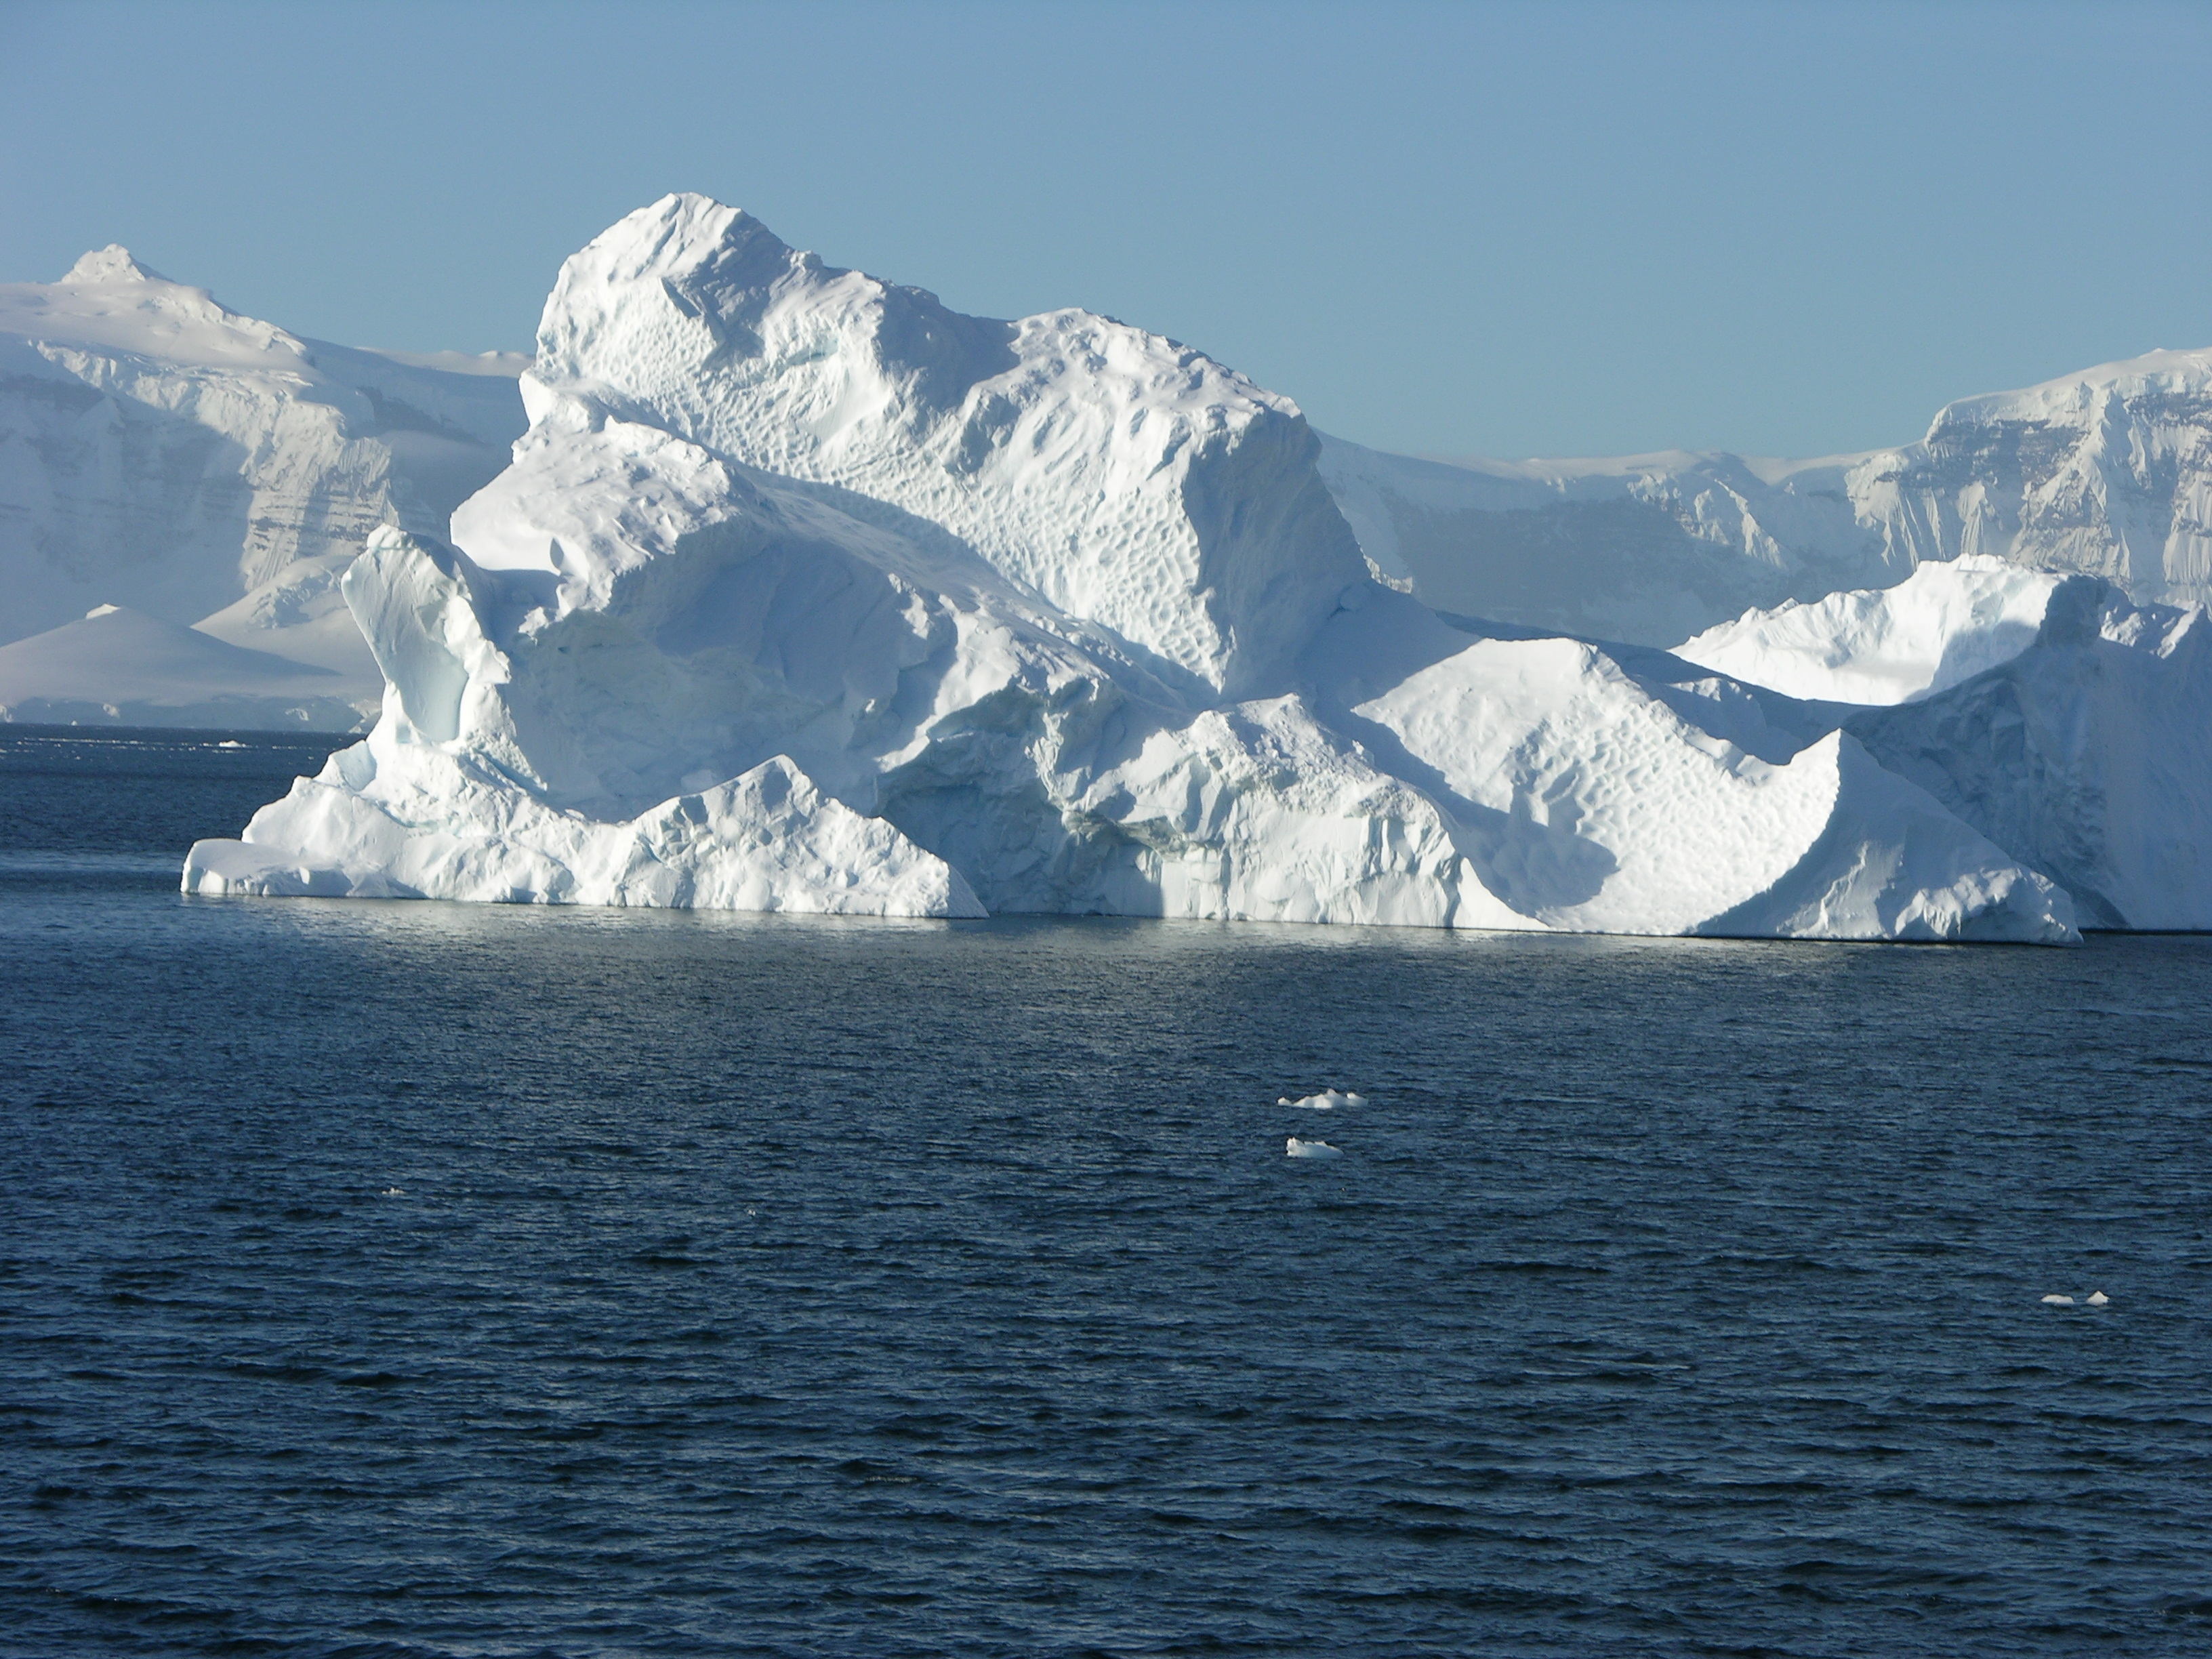 The snow and ice covering Antarctica reflects most of the sun's light and makes it the coldest place on Earth. Photo by Larry Madin, ©Woods Hole Oceanographic Institution